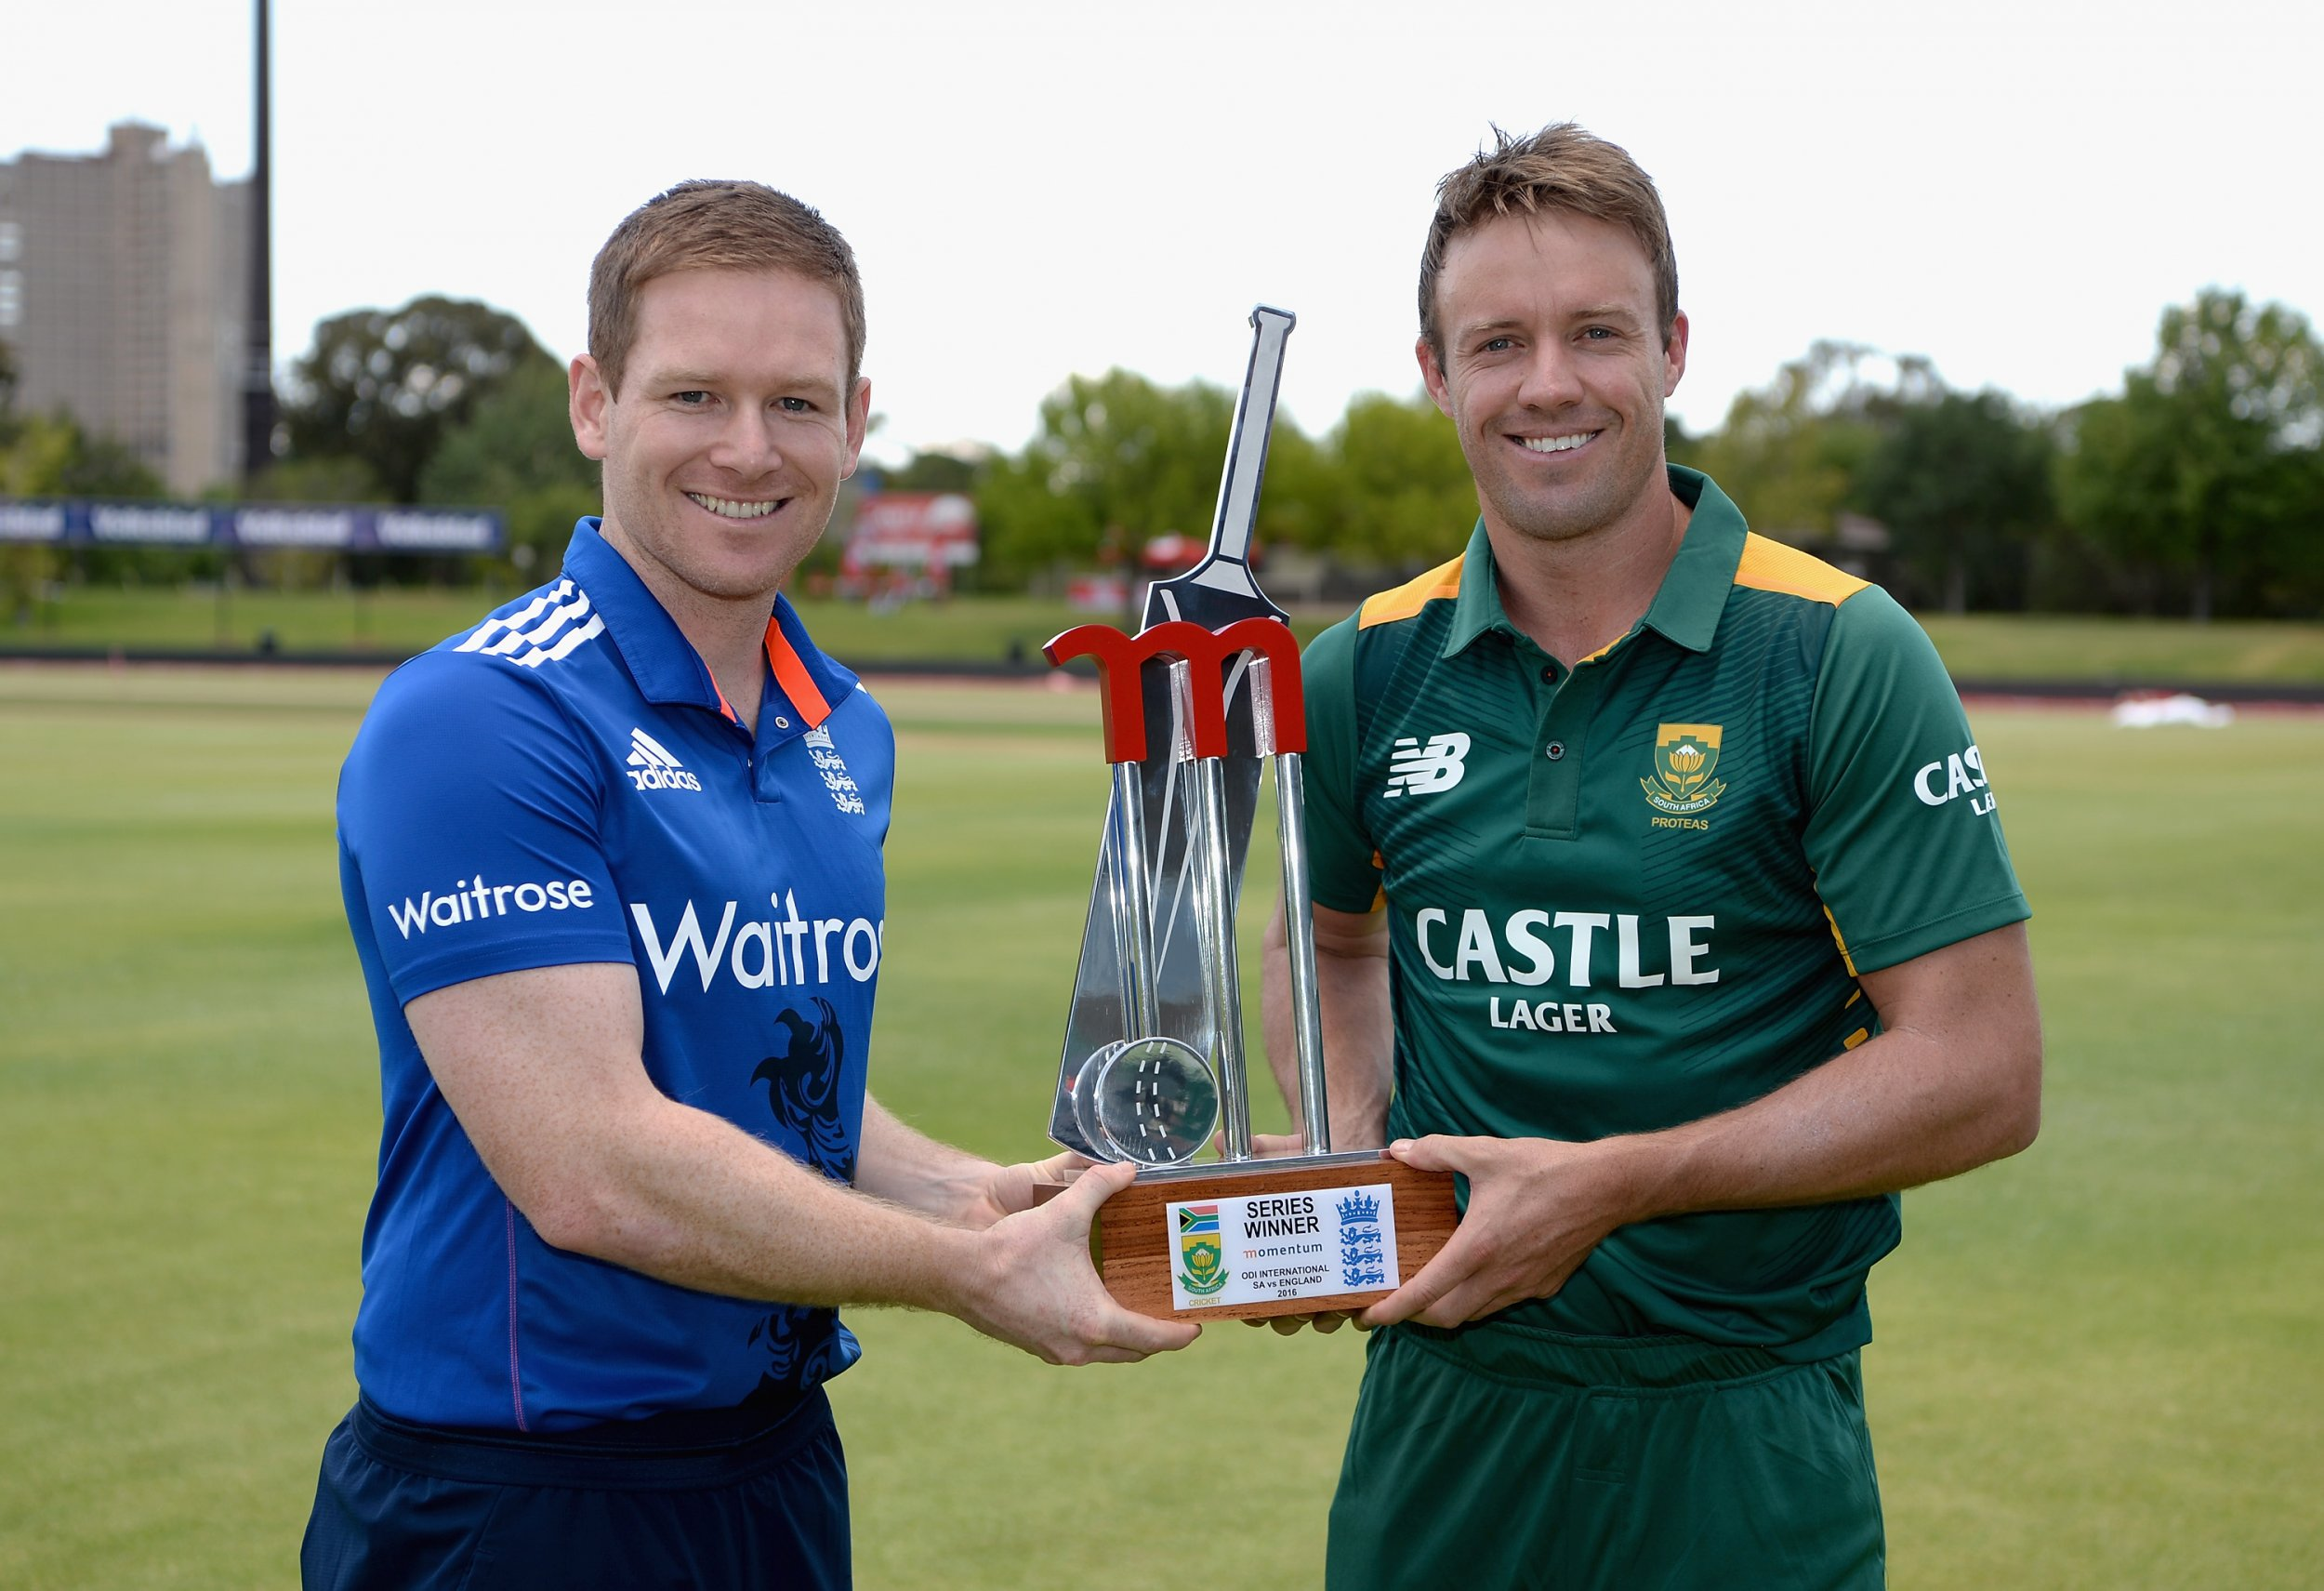 Eoin Morgan and A.B. De Villiers will contest the one-day series